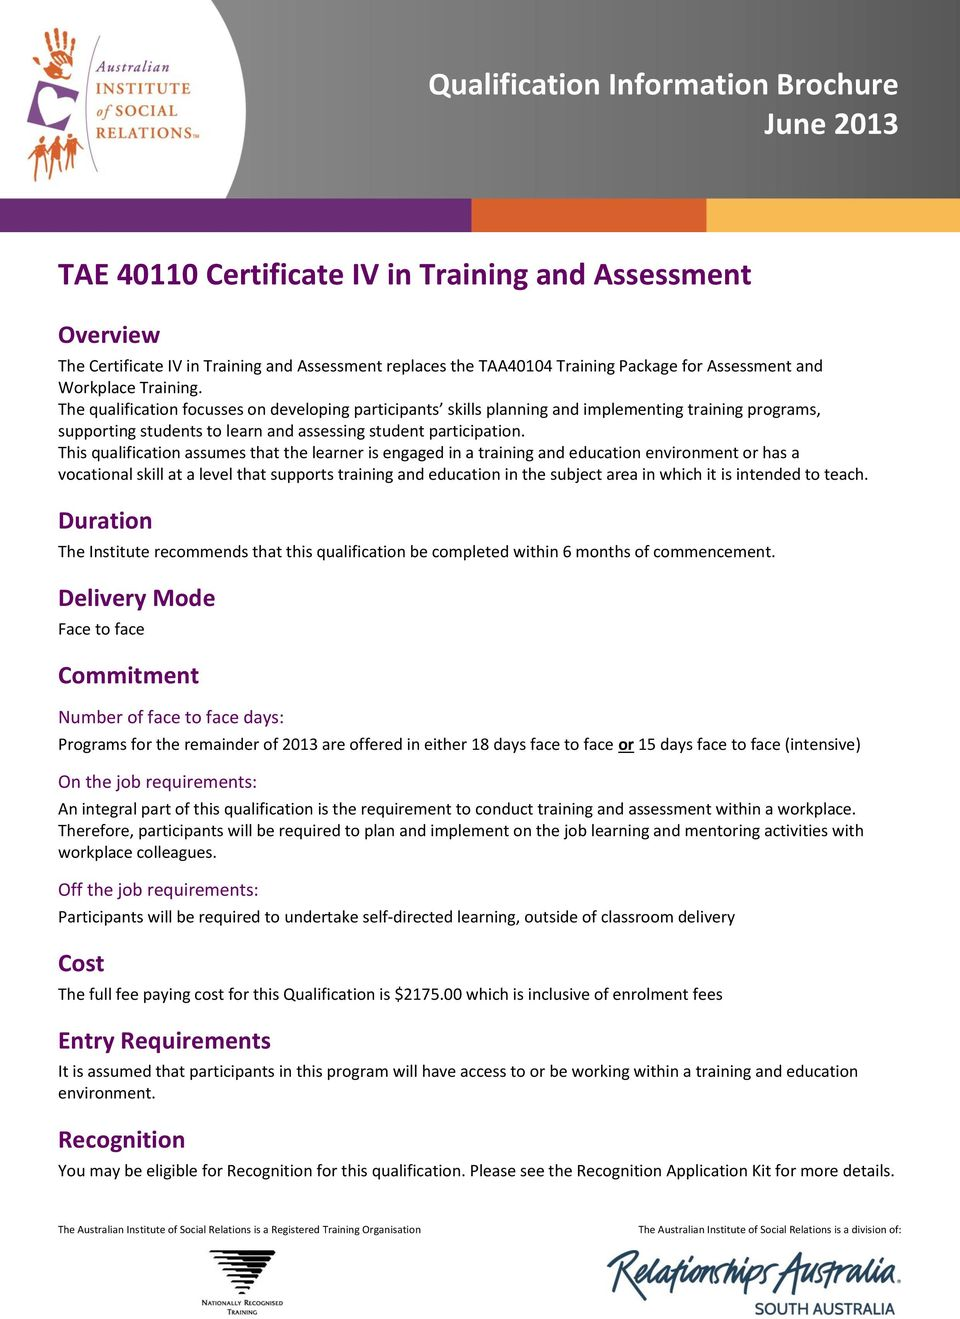 This qualification assumes that the learner is engaged in a training and education environment or has a vocational skill at a level that supports training and education in the subject area in which